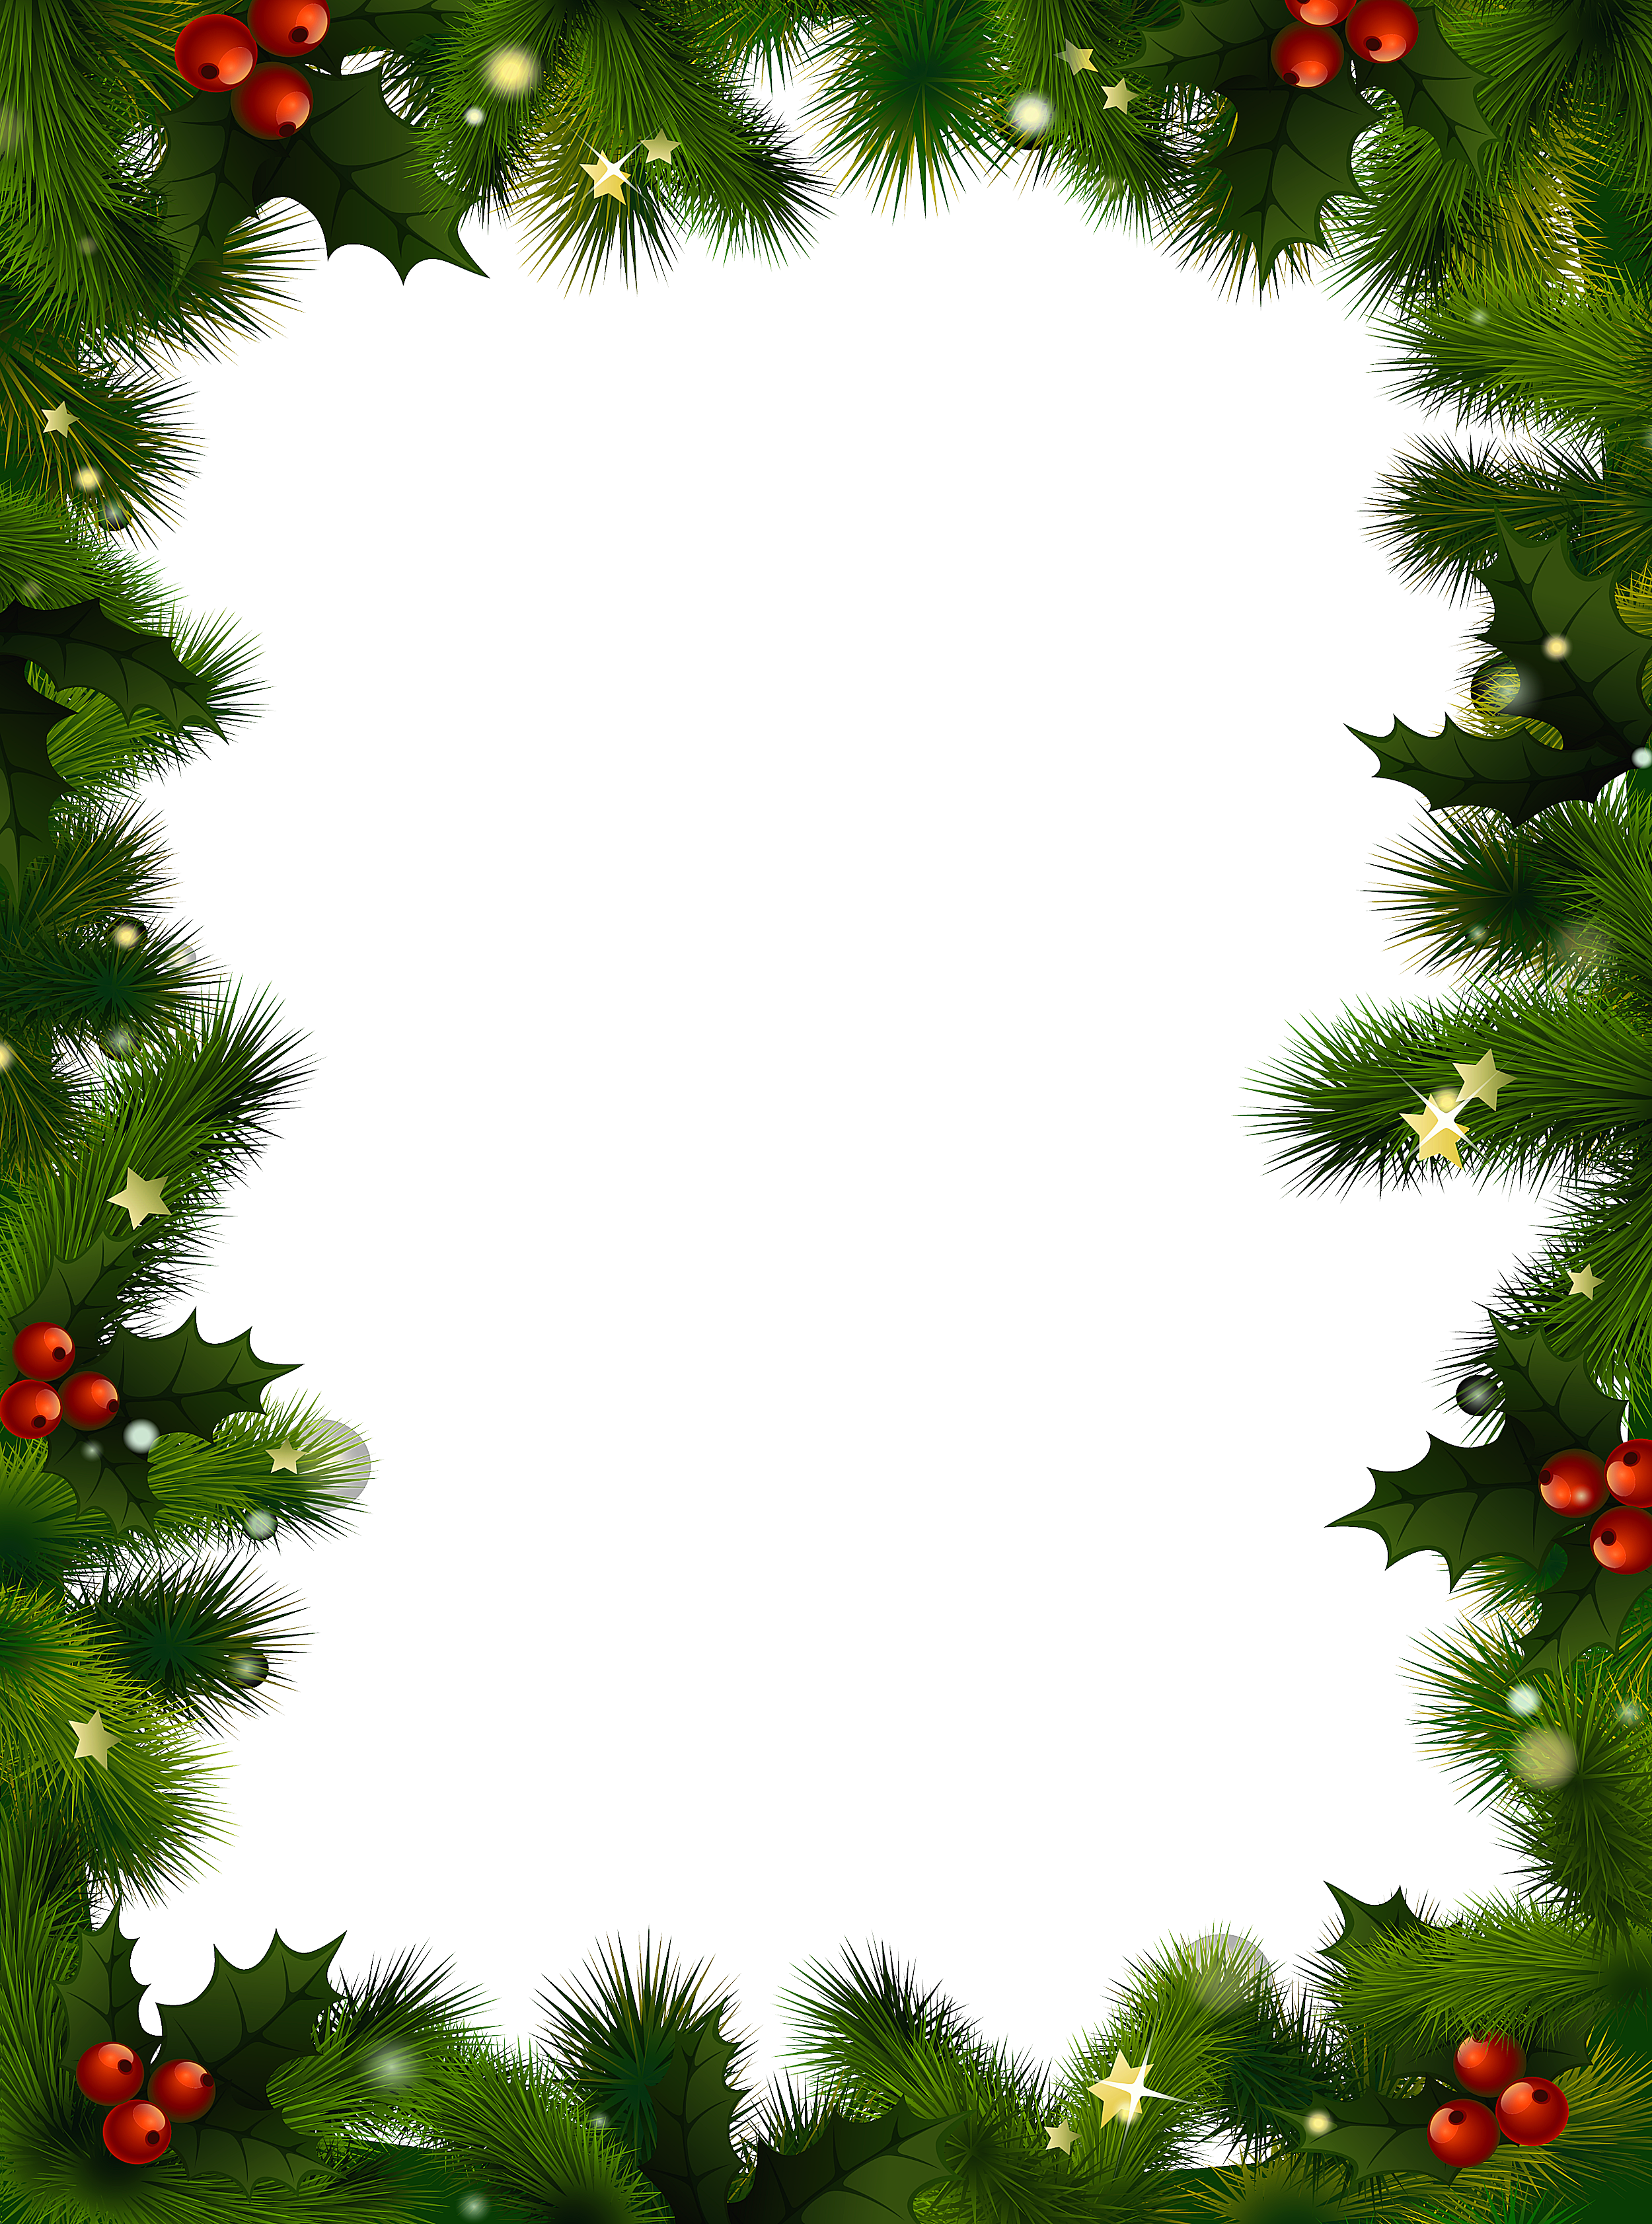 Holiday clipart picture frame. Borders for word documents